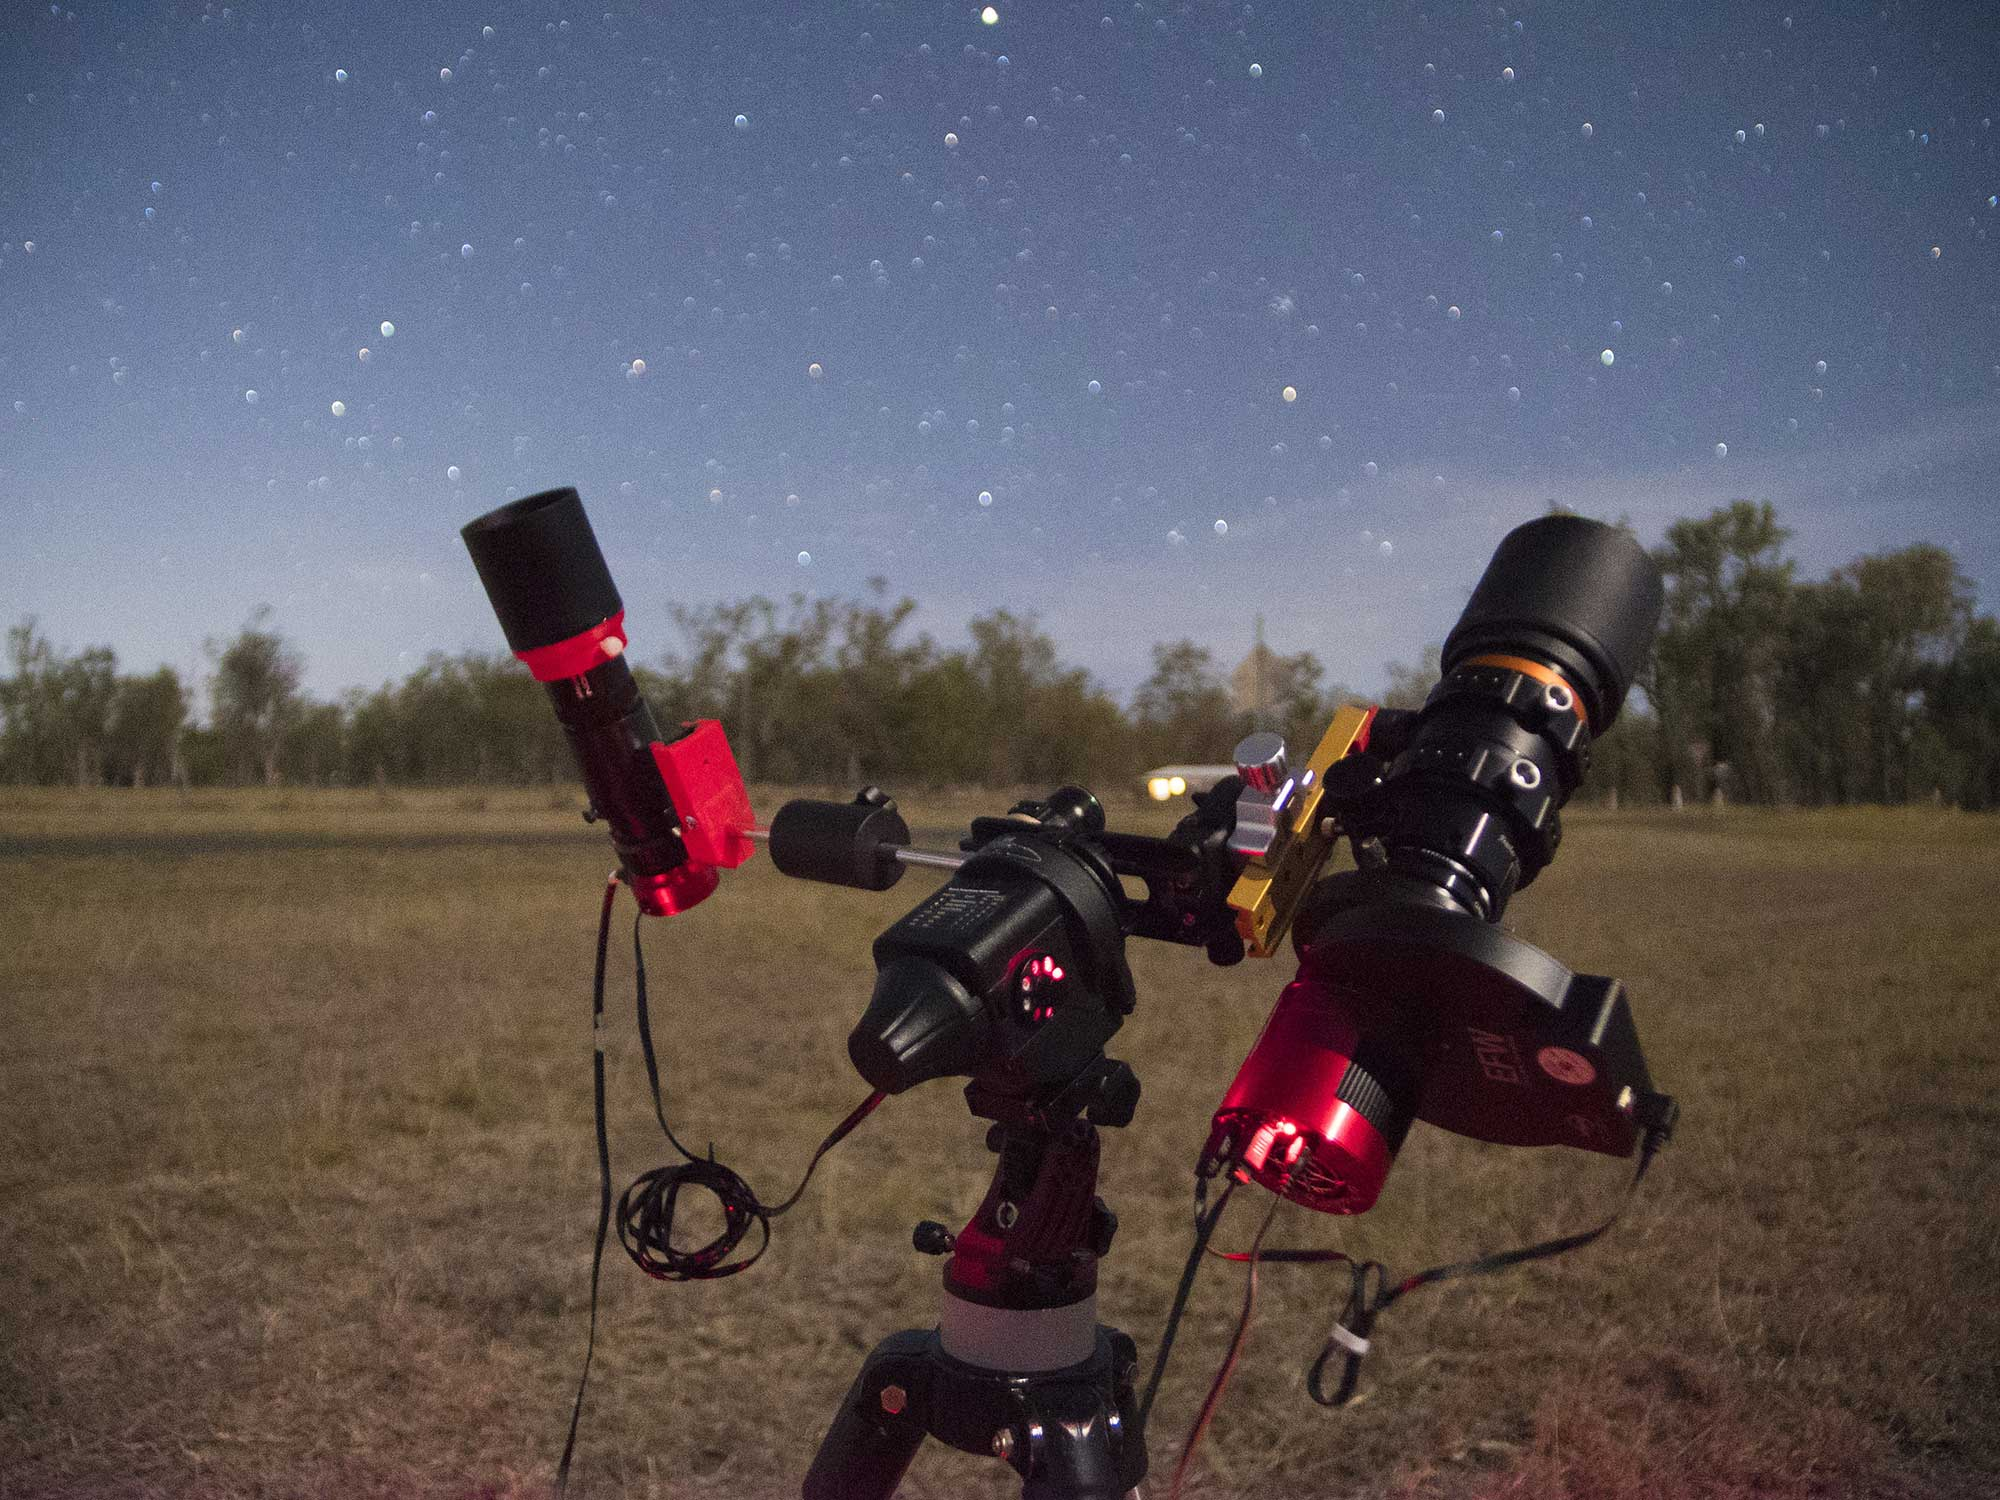 In the field with the Star Adventurer mount and Orion 50mm guide scope